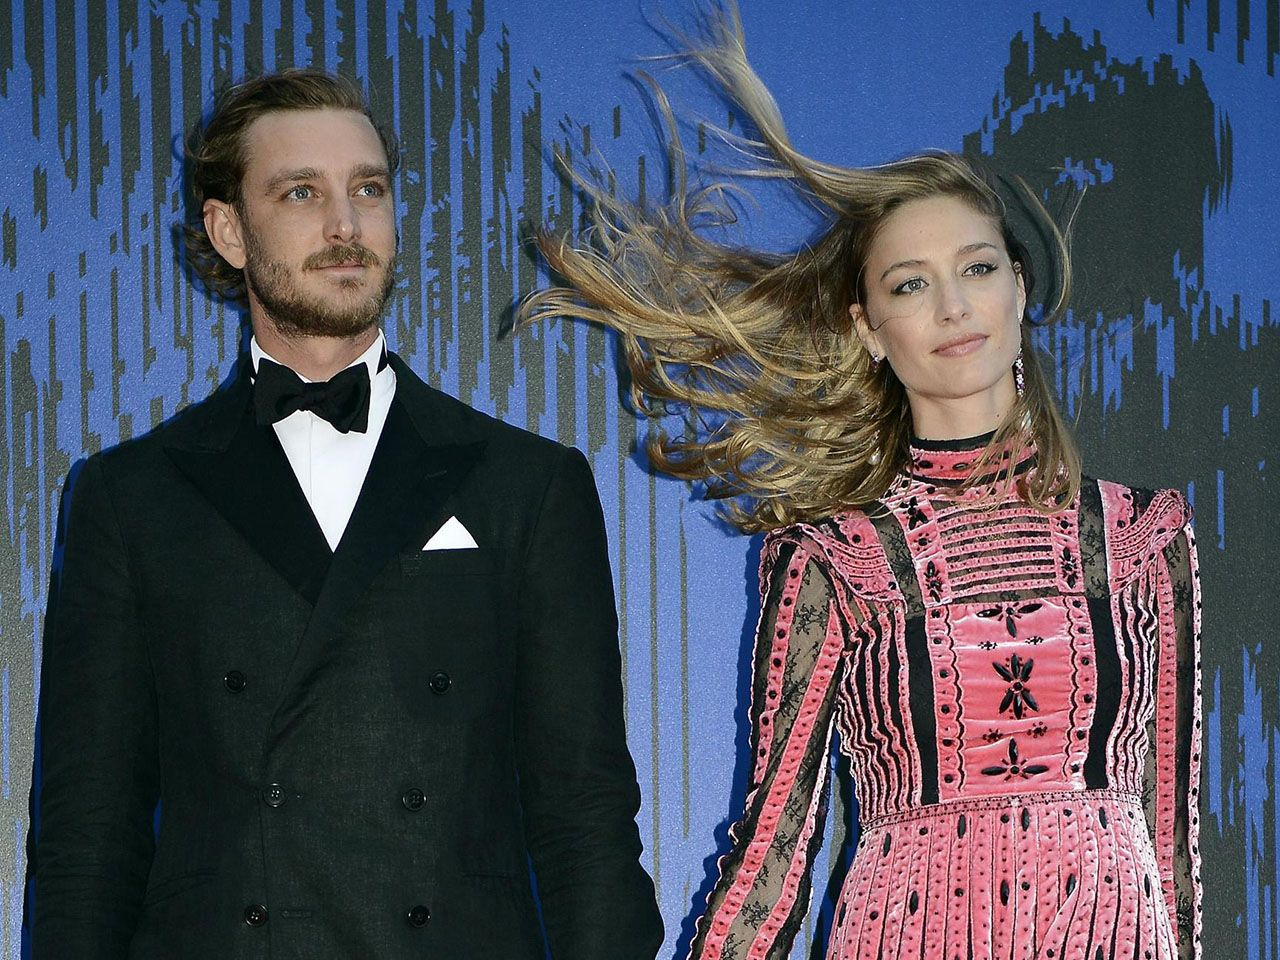 Beatrice Borromeo e Pierre Casiraghi genitori per la seconda volta